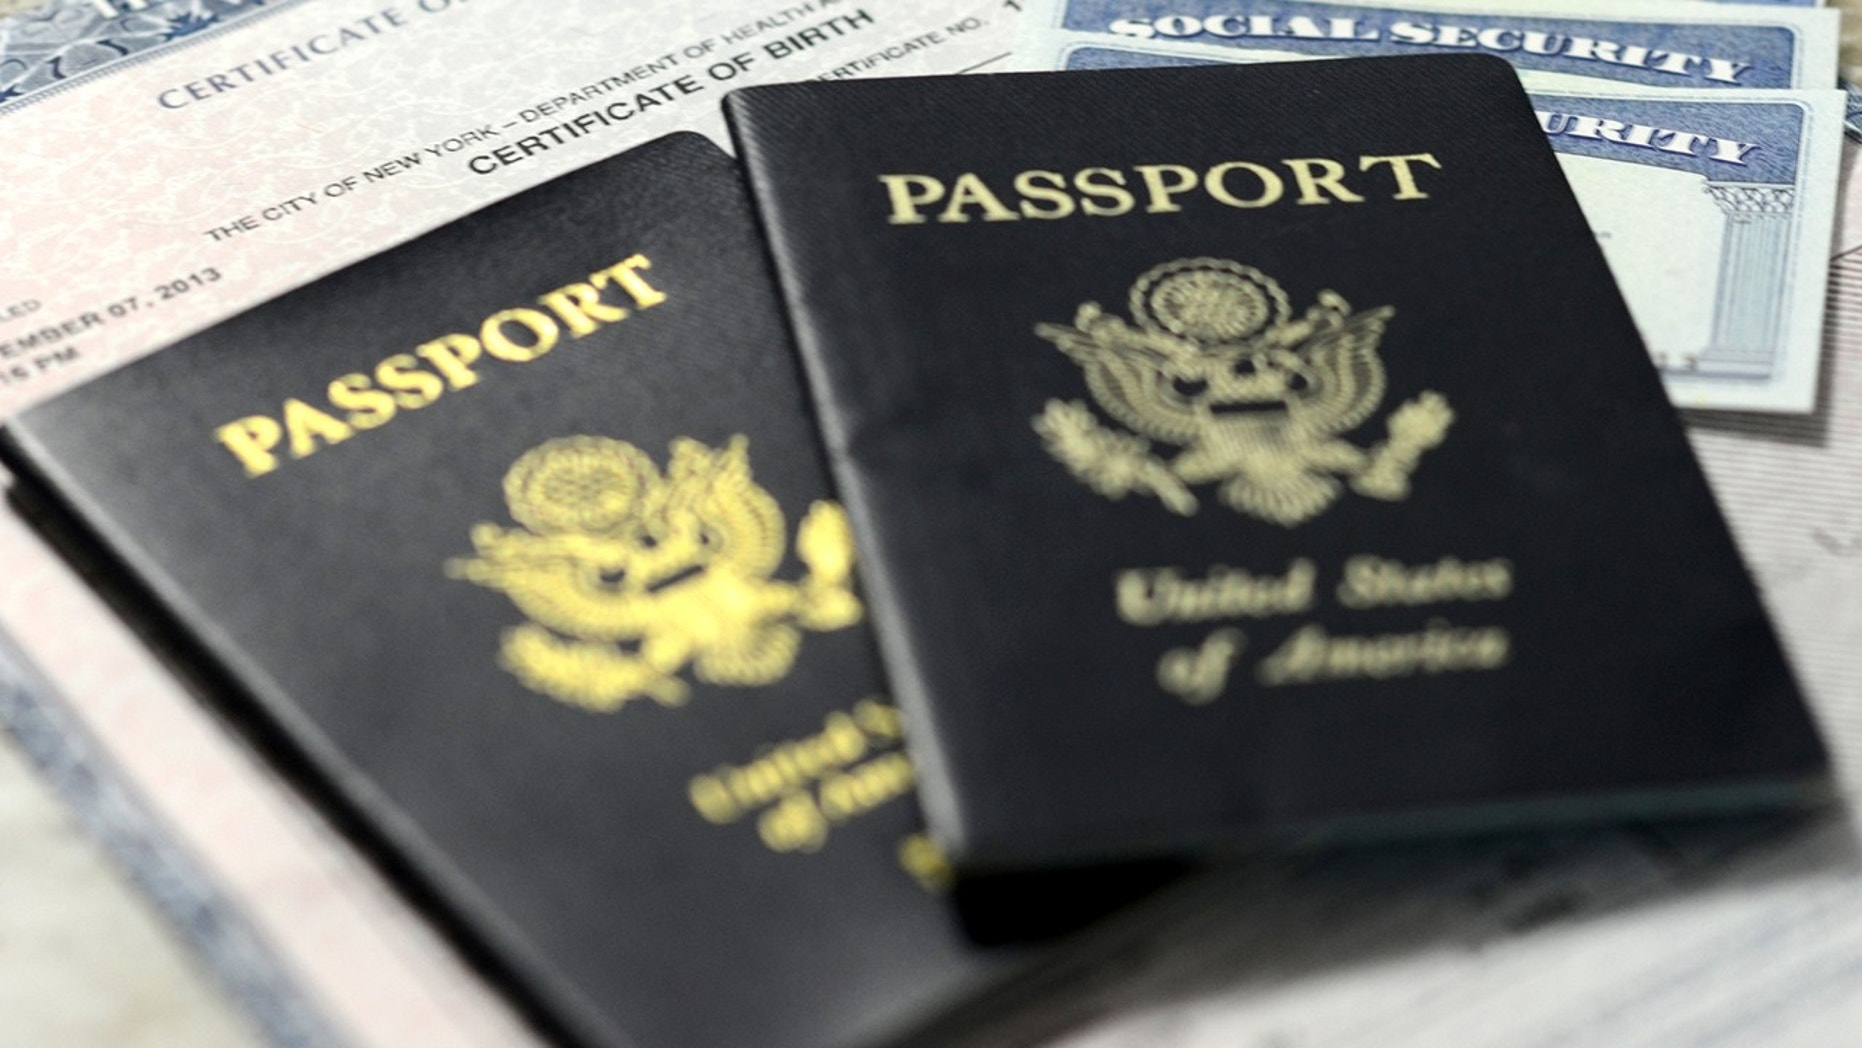 Us Passport Fees to Increase in April, to Offset Cost of 'Providing the Consular Service'